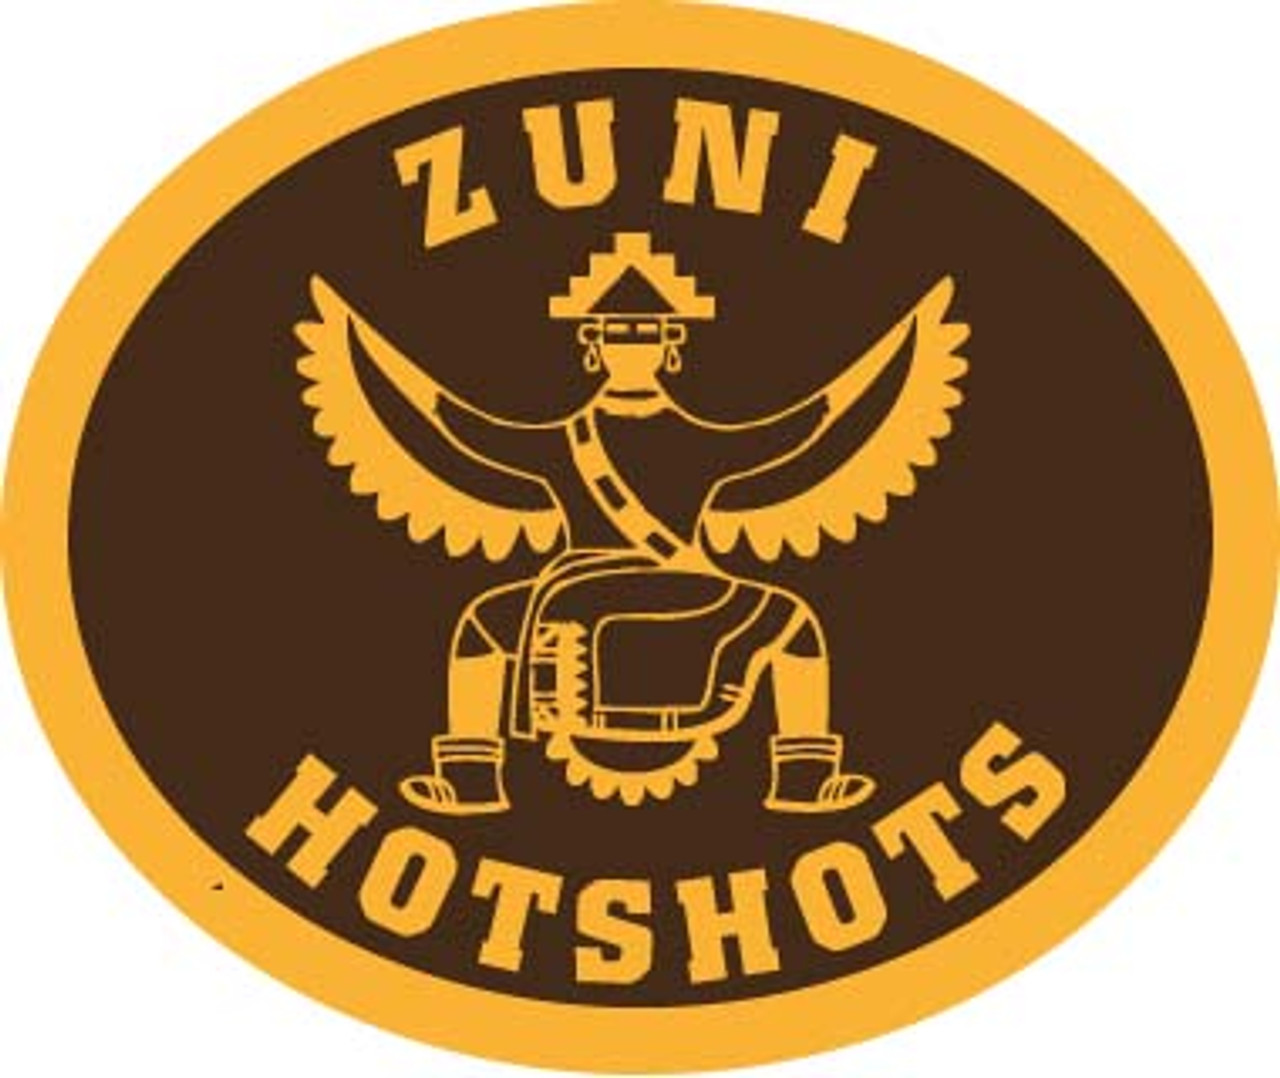 Zuni Hotshots-2019 Buckle (RESTRICTED)